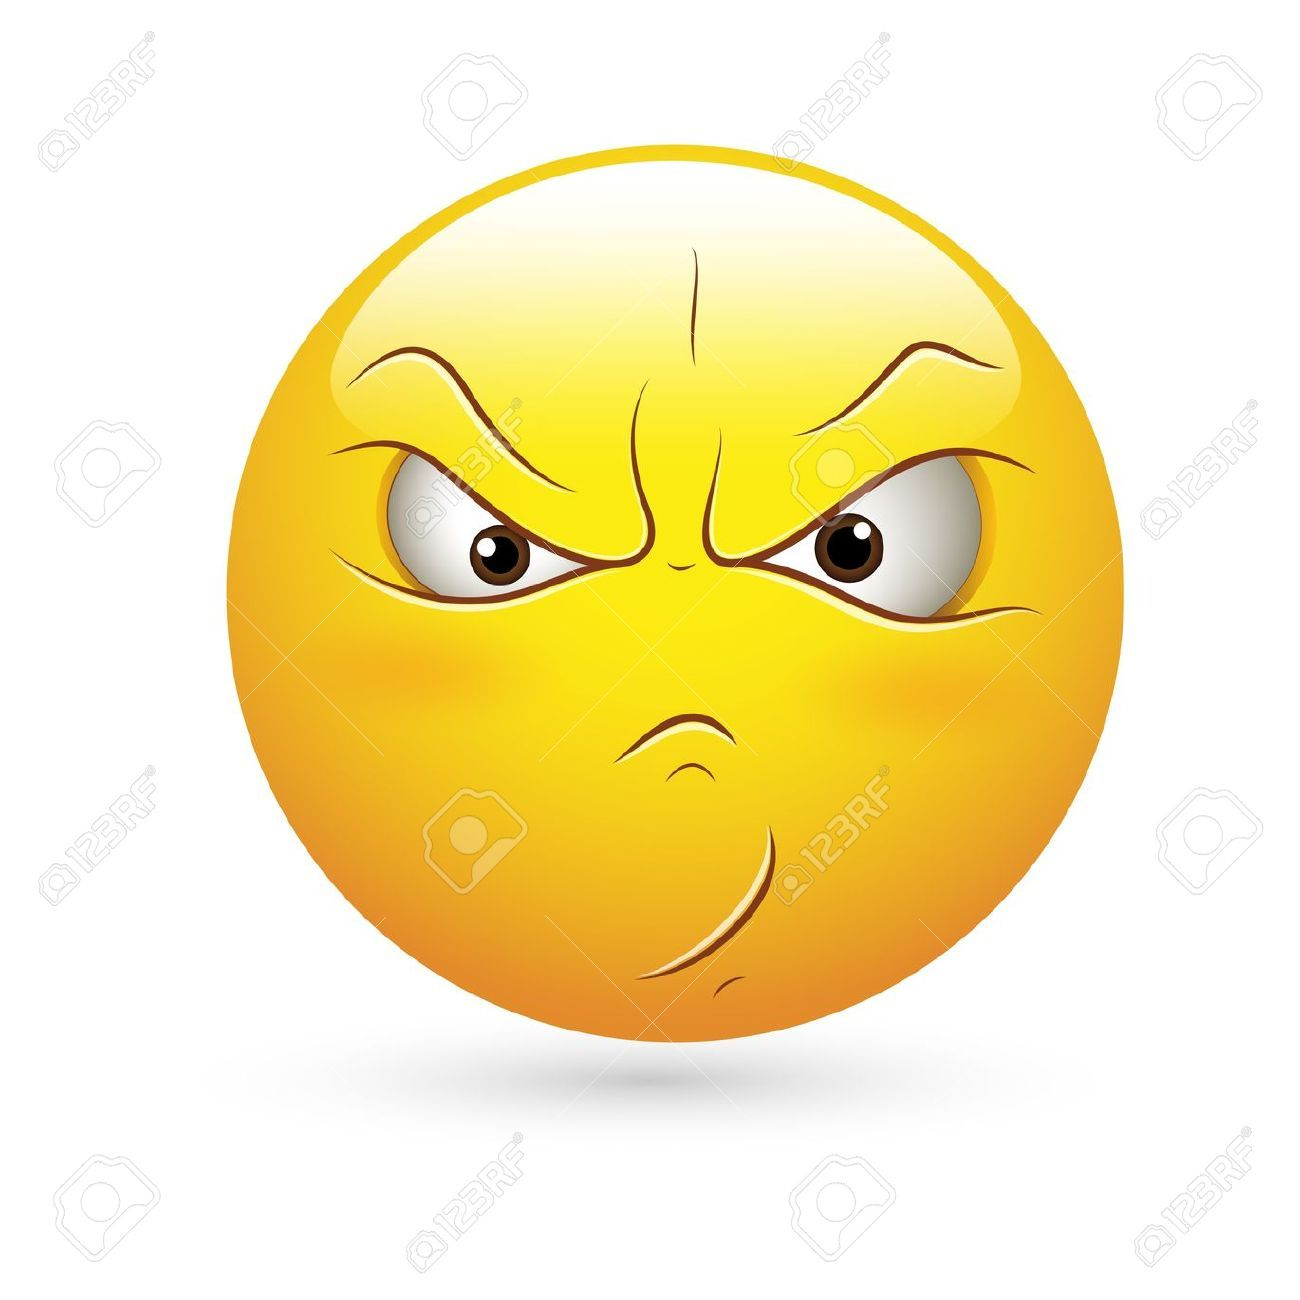 15808713-Smiley-Emoticons-Face-Vector-Angry-Expression-Stock-Vector-cartoon.jpg (1300×1300)